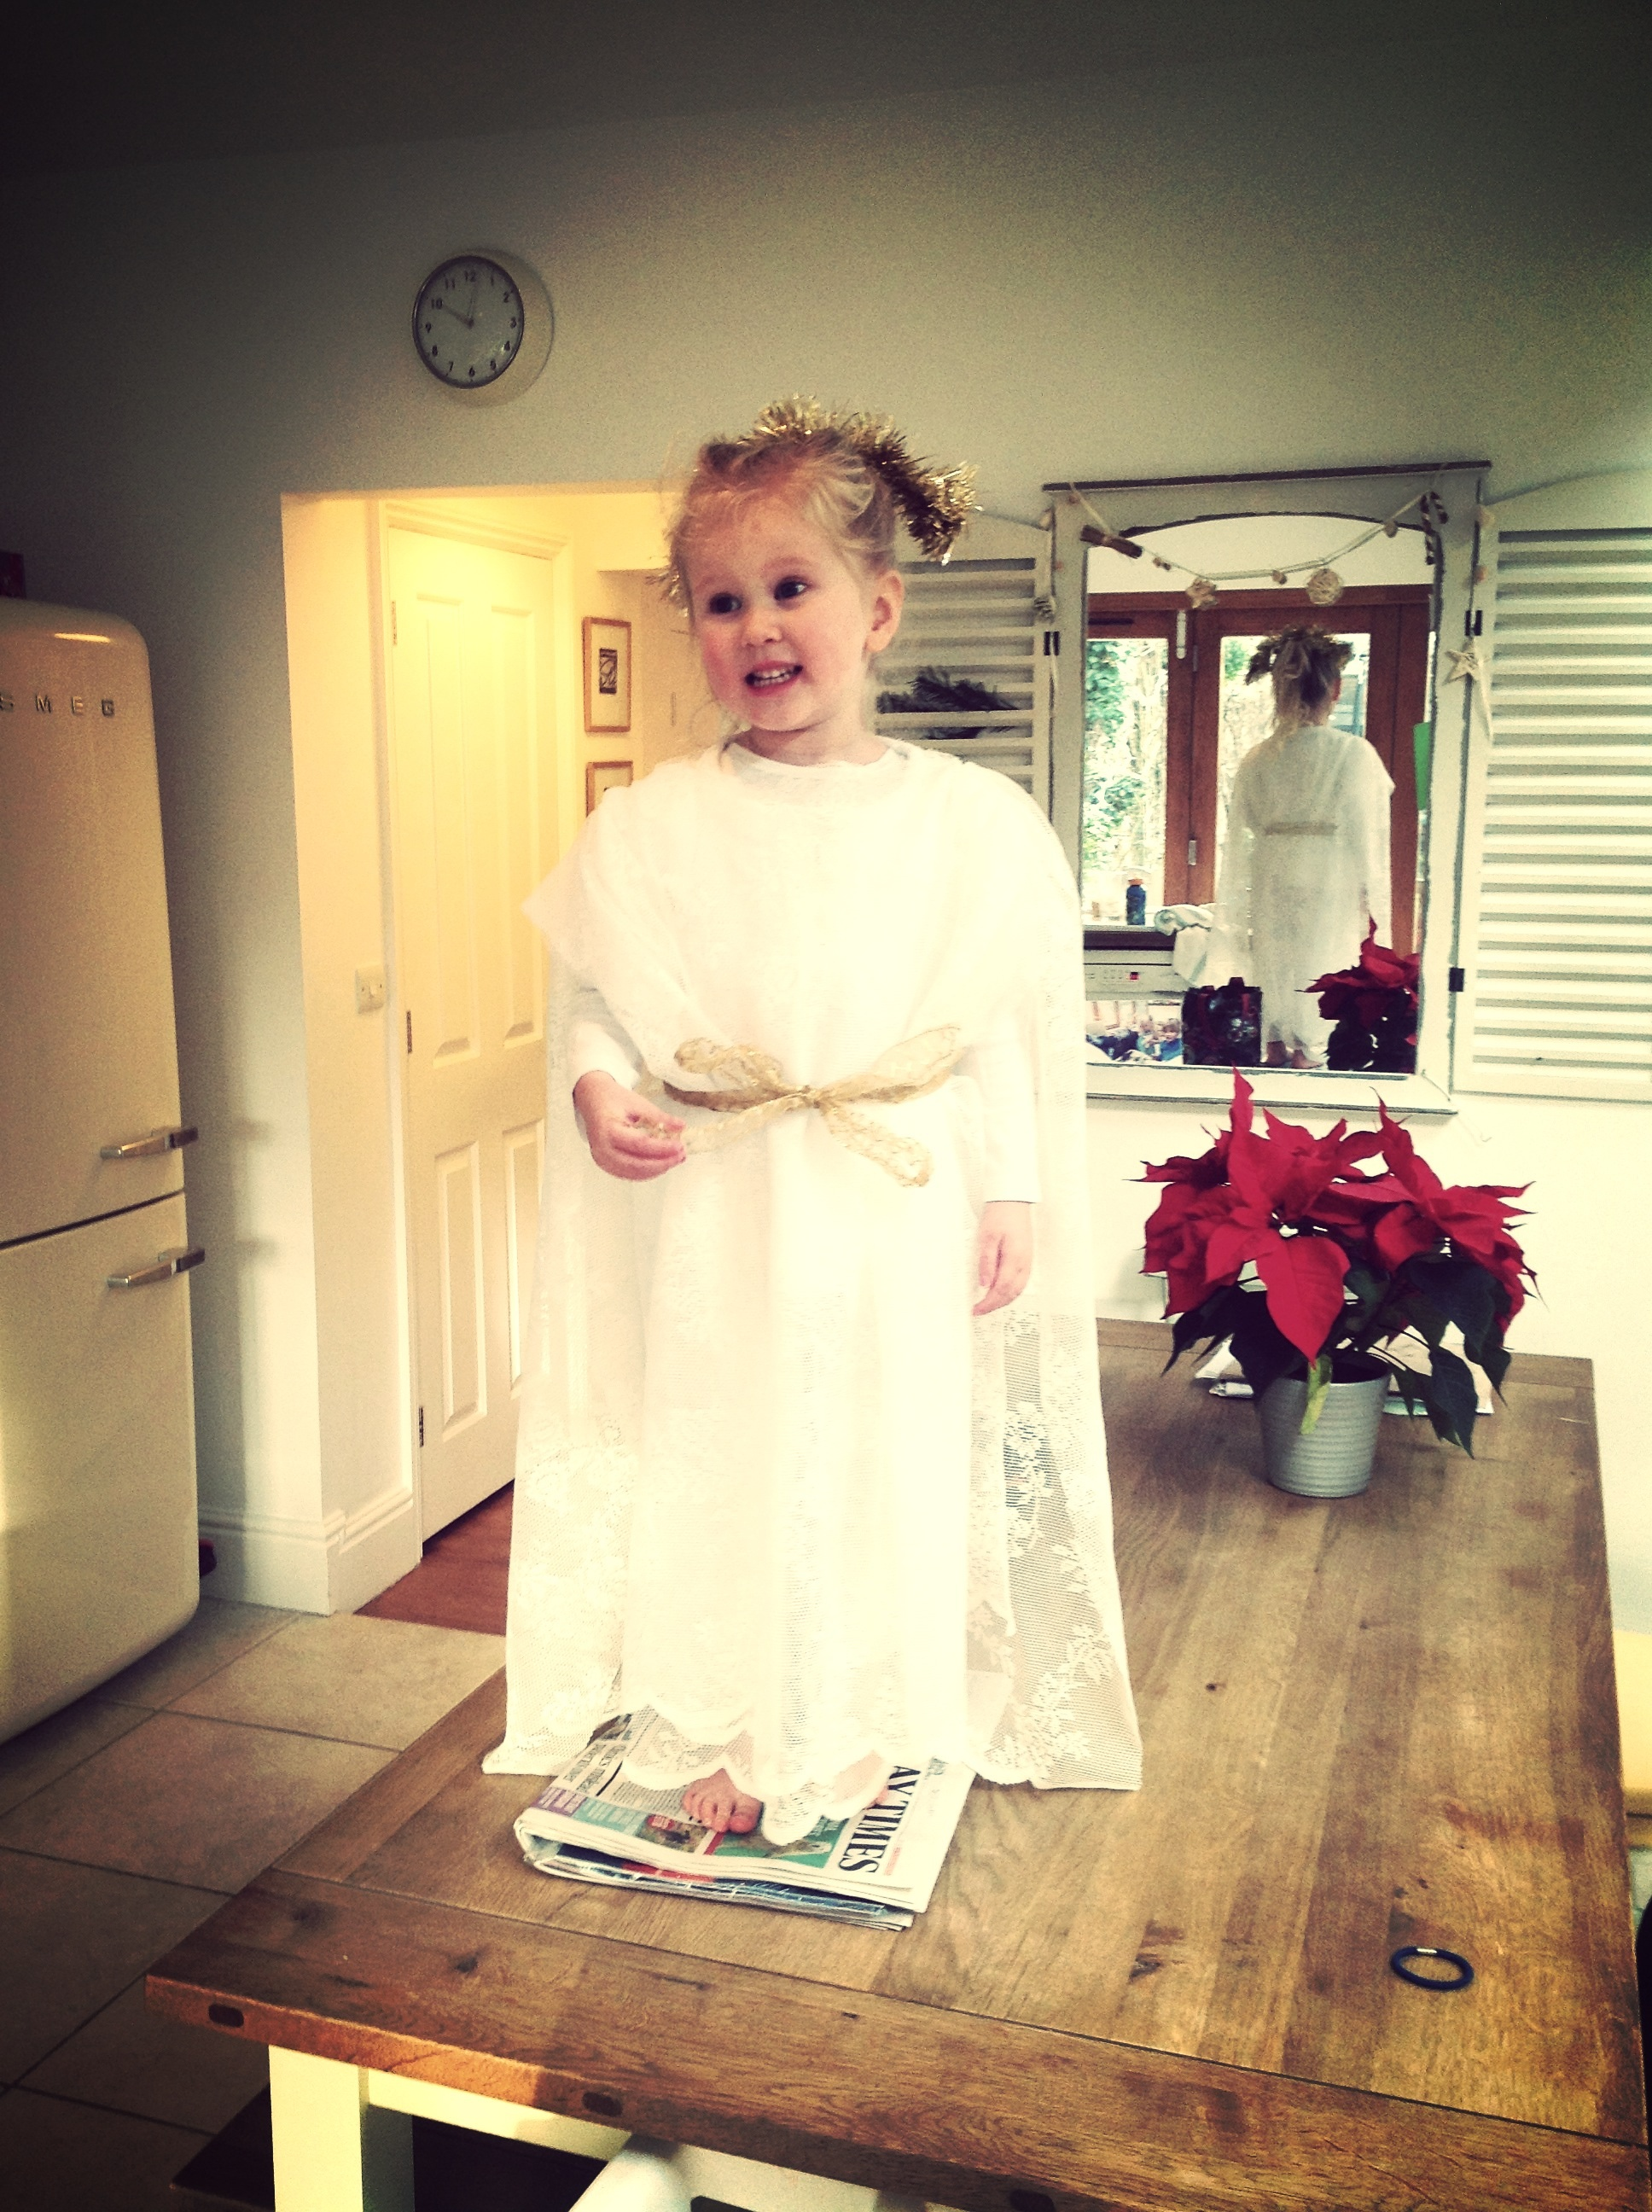 The Final result of the angel costume, I'm actually quite chuffed with it!